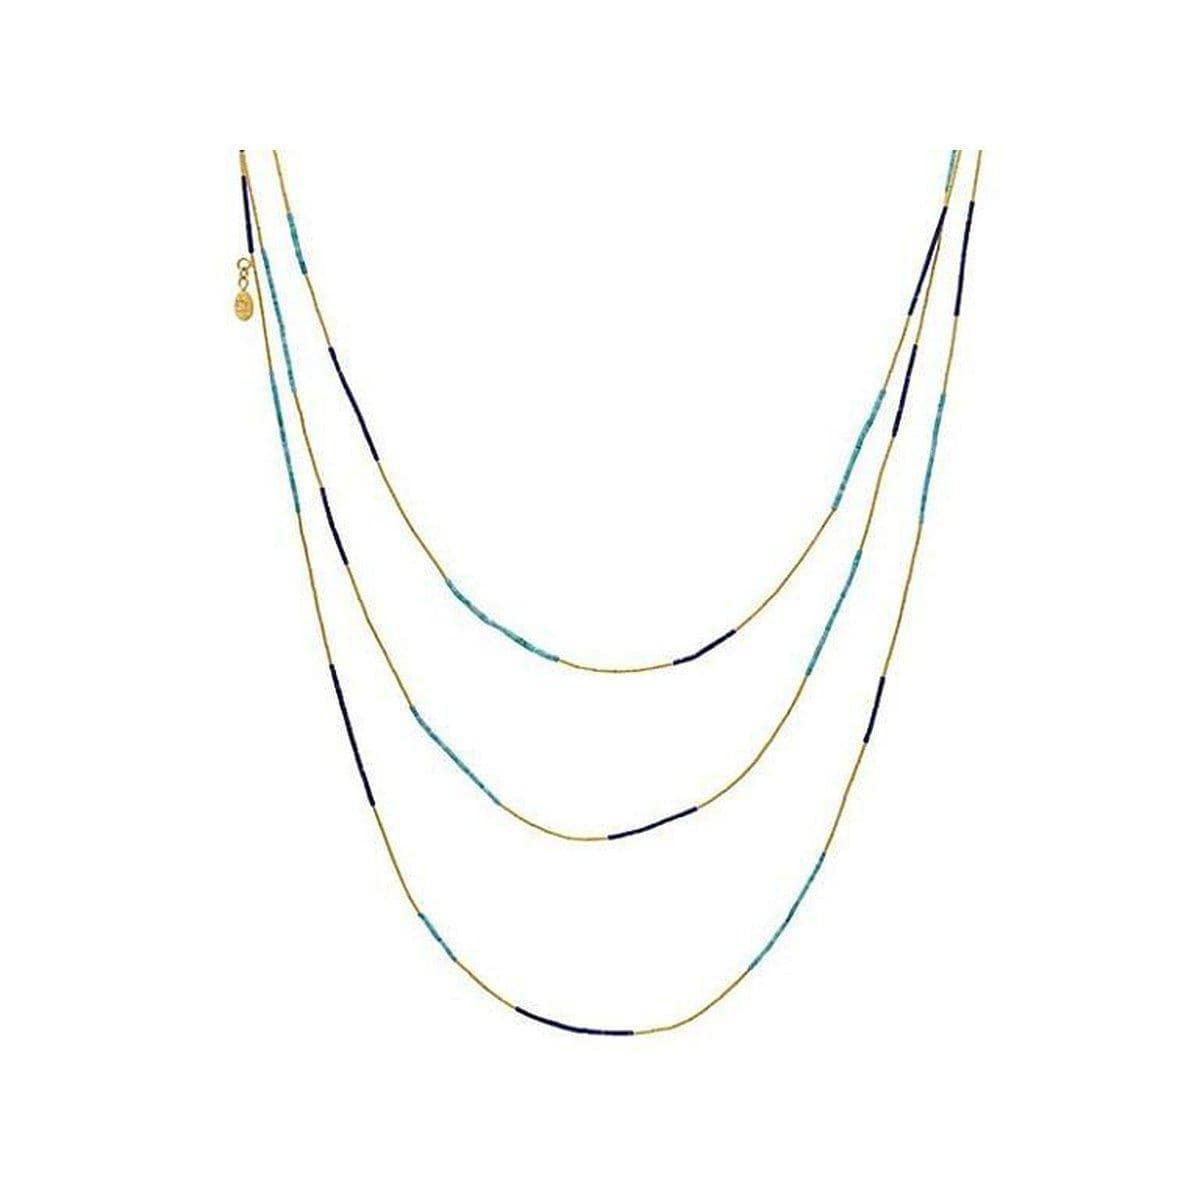 Delicate Hue 24K Gold Multi Stone Necklace - MN1-LATQ-23ST-PL-50-GURHAN-Renee Taylor Gallery